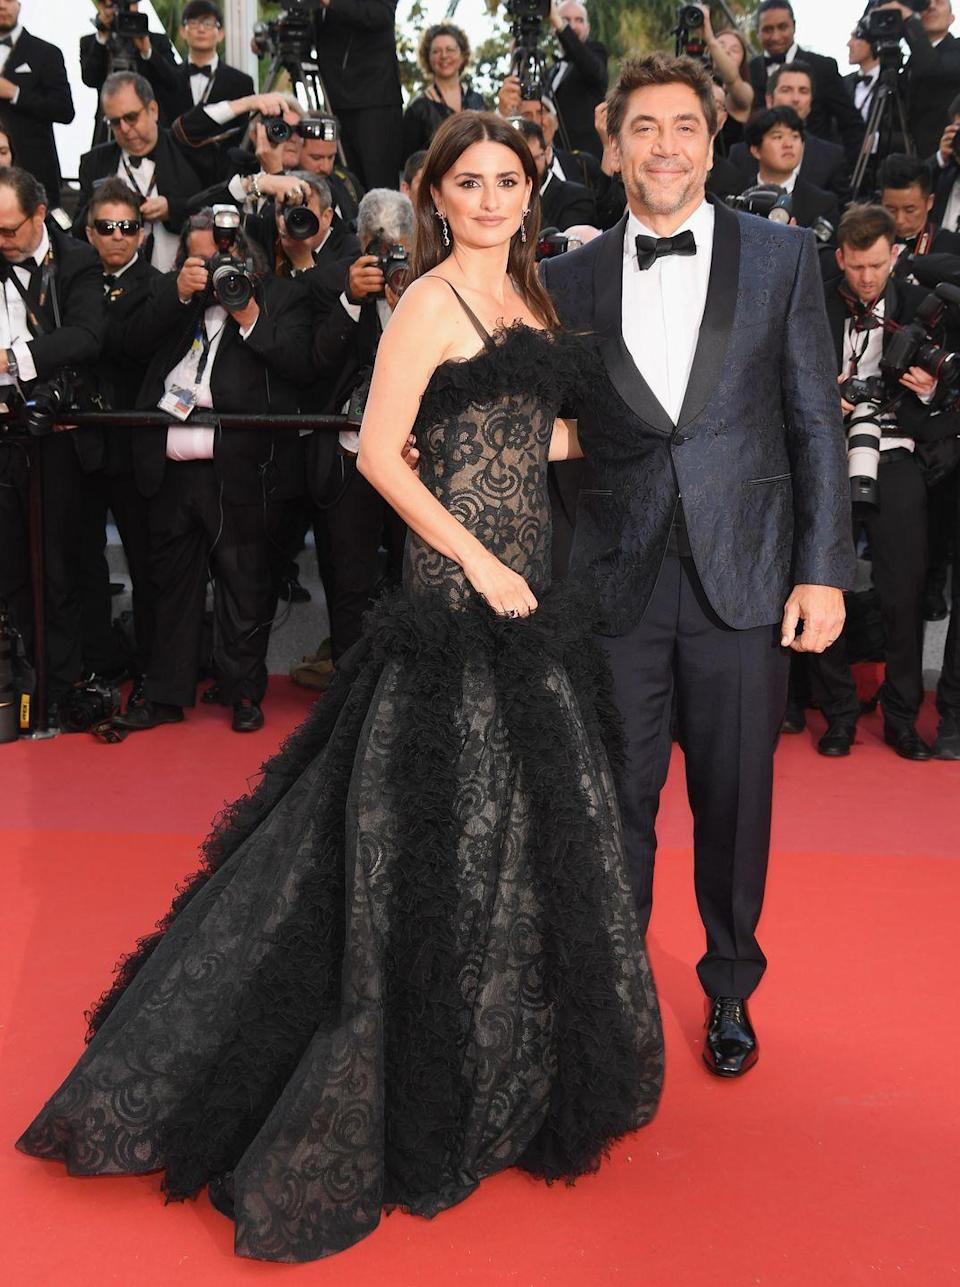 "<p>Penelope Cruz and Javier Bardem's on-screen romance in<em> Vicky Christina Barcelona</em> turned into a real-life relationship for the two actors in 2007. The couple got married in 2010, but they've been notoriously private ever since.<br></p><p>It was ""a really good decision for us, not to talk about our relationship,"" Cruz told <a href=""https://www.tatler.com/preview/article/penelope-cruz-is-tatlers-august-issue-cover-star"" rel=""nofollow noopener"" target=""_blank"" data-ylk=""slk:Tatler magazine"" class=""link rapid-noclick-resp""><em>Tatler</em> magazine</a>. ""It would feel very strange to do it a different way. I just couldn't do it.""</p>"